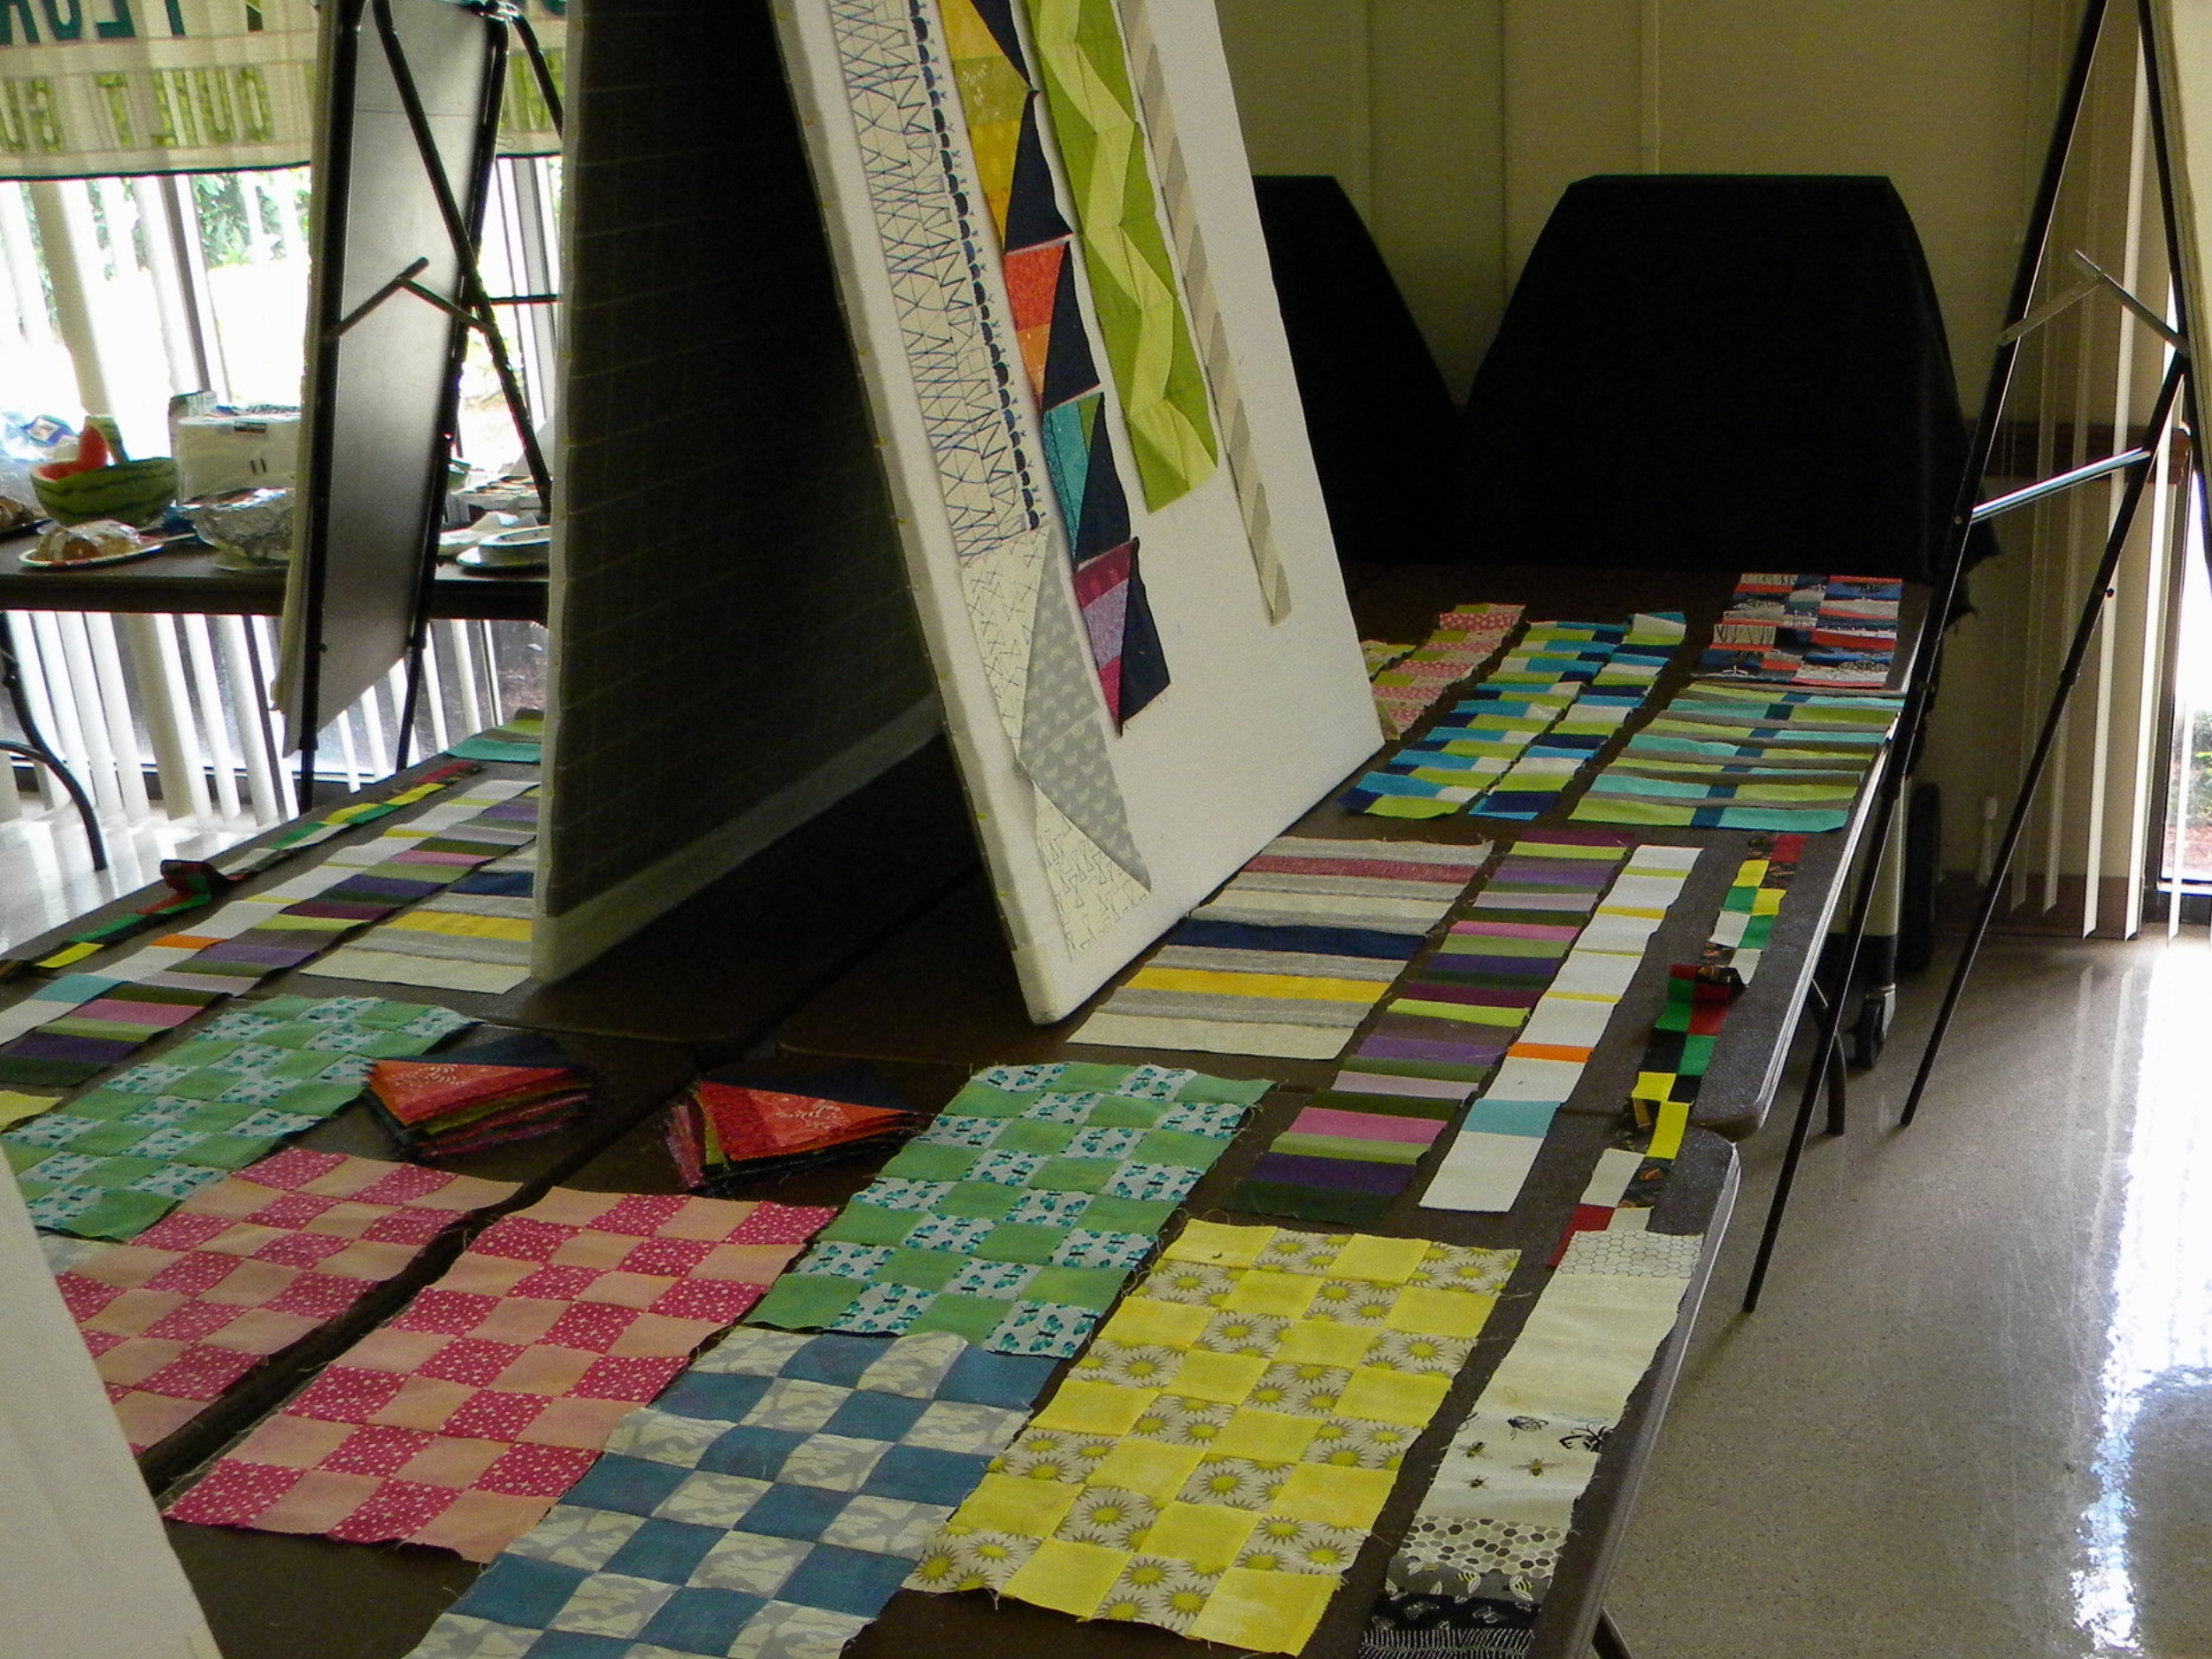 March's Strips, Squares, and Rectangles